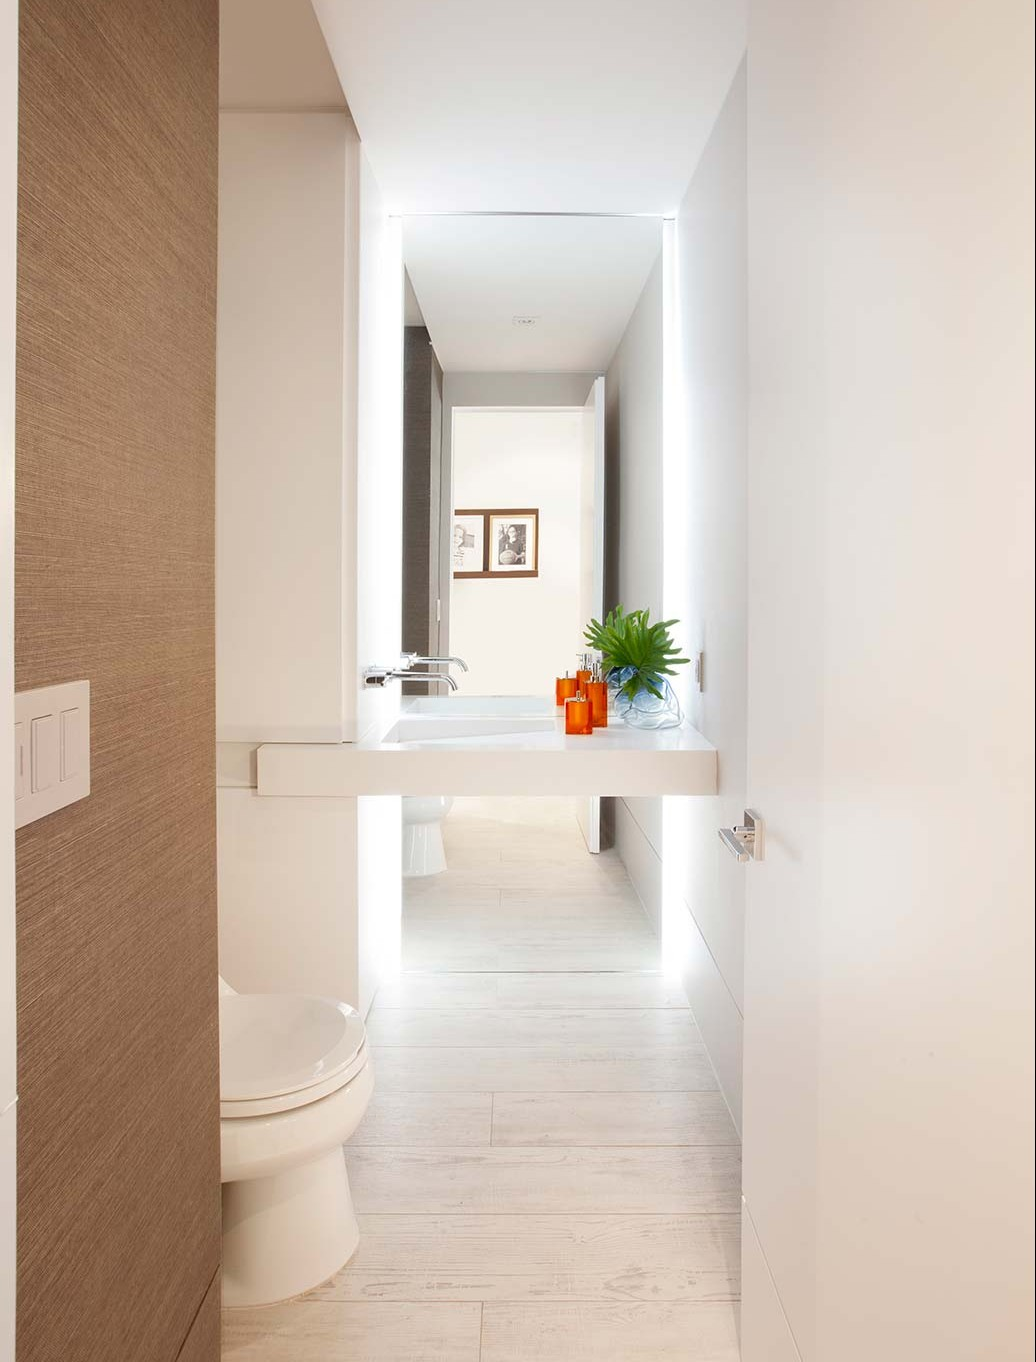 Miami Interior Design Firm most recent feature on Houzz.com